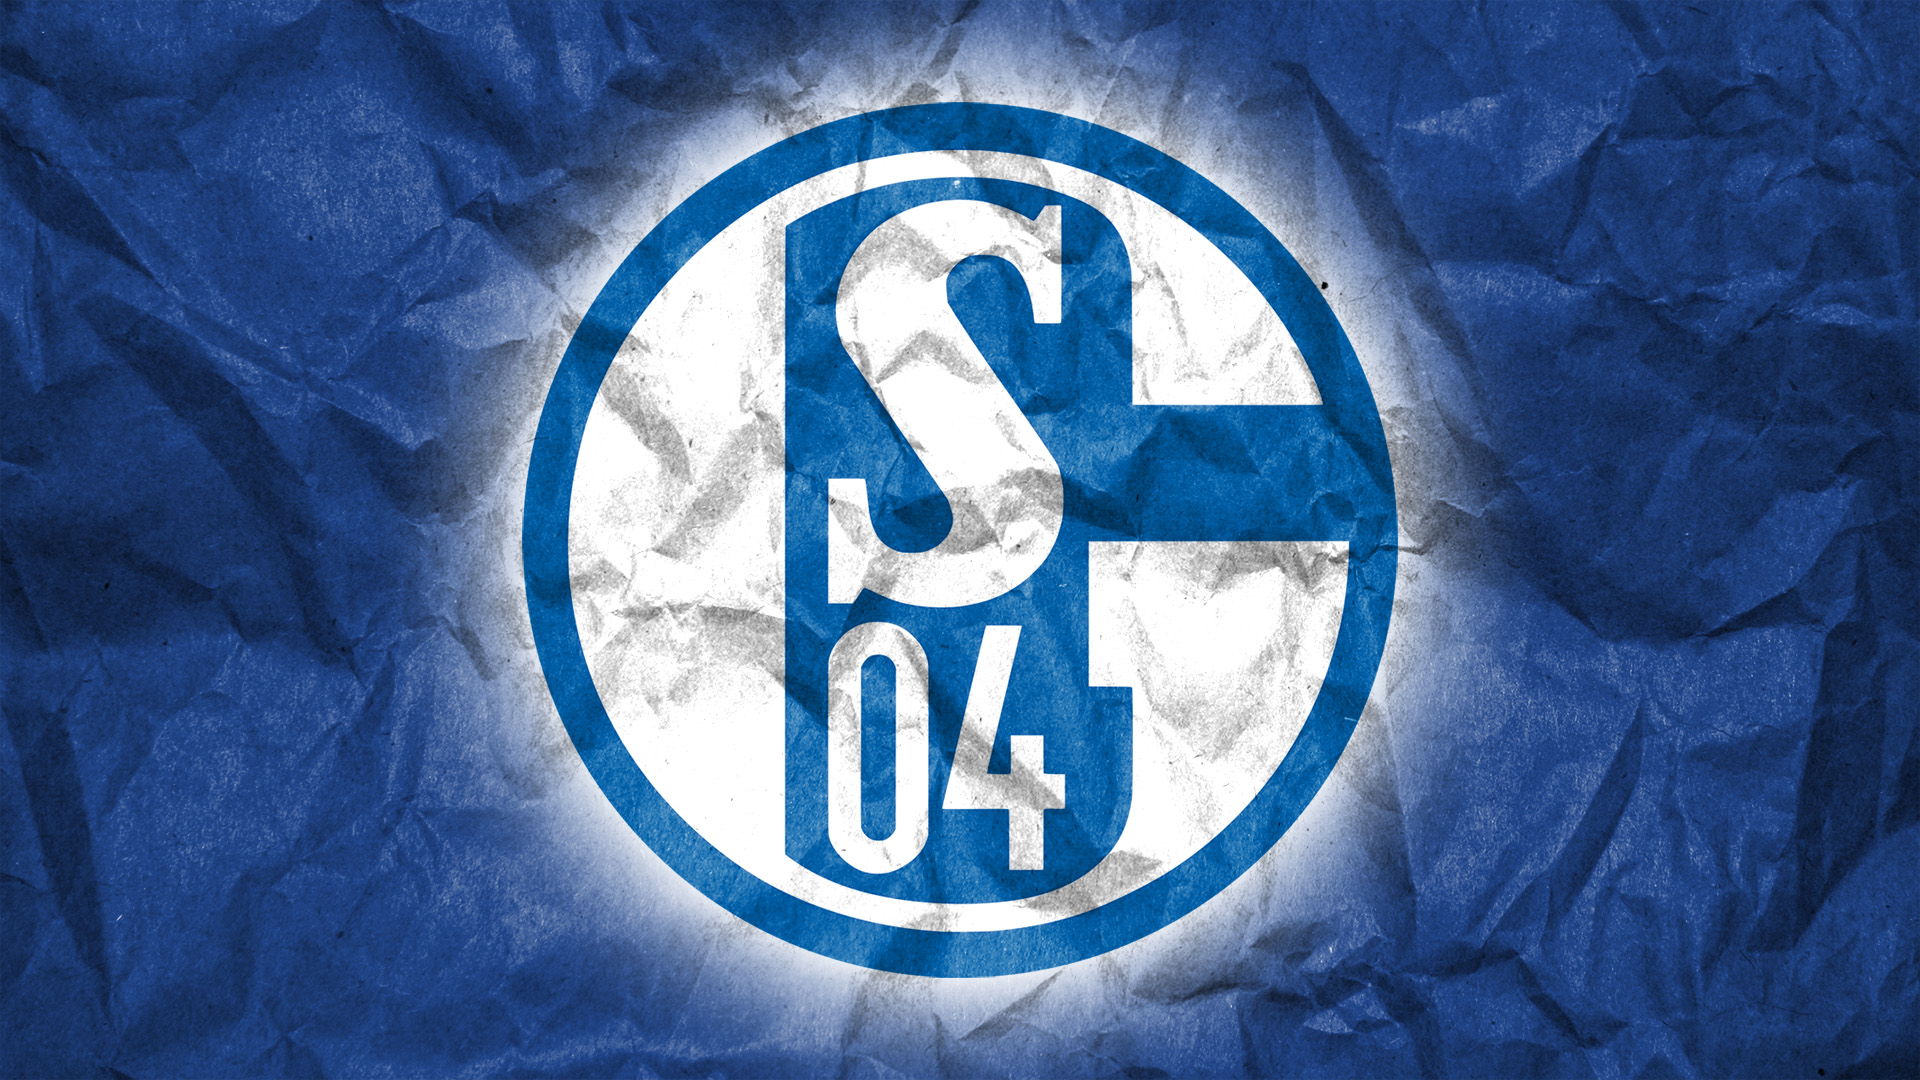 schalke bilder downloaden